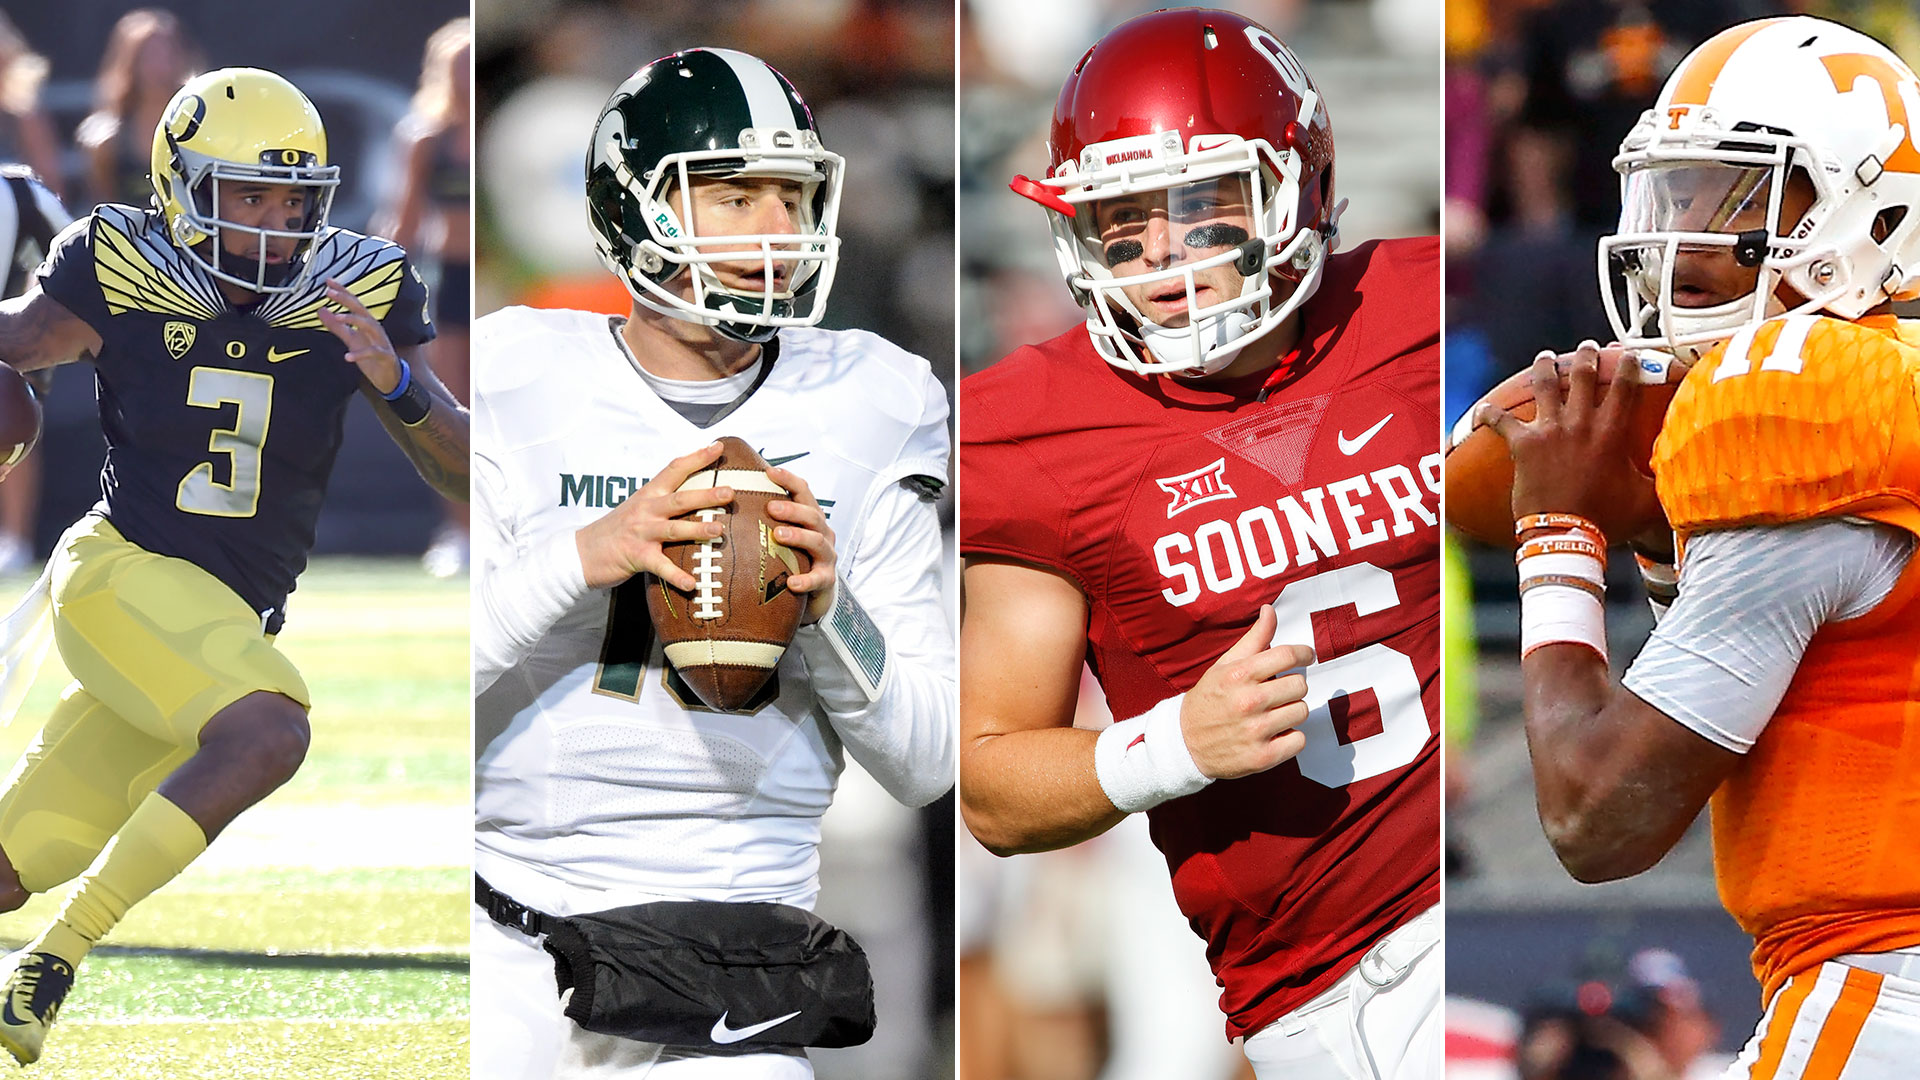 College football picks Week 2: Expert panel favors Spartans